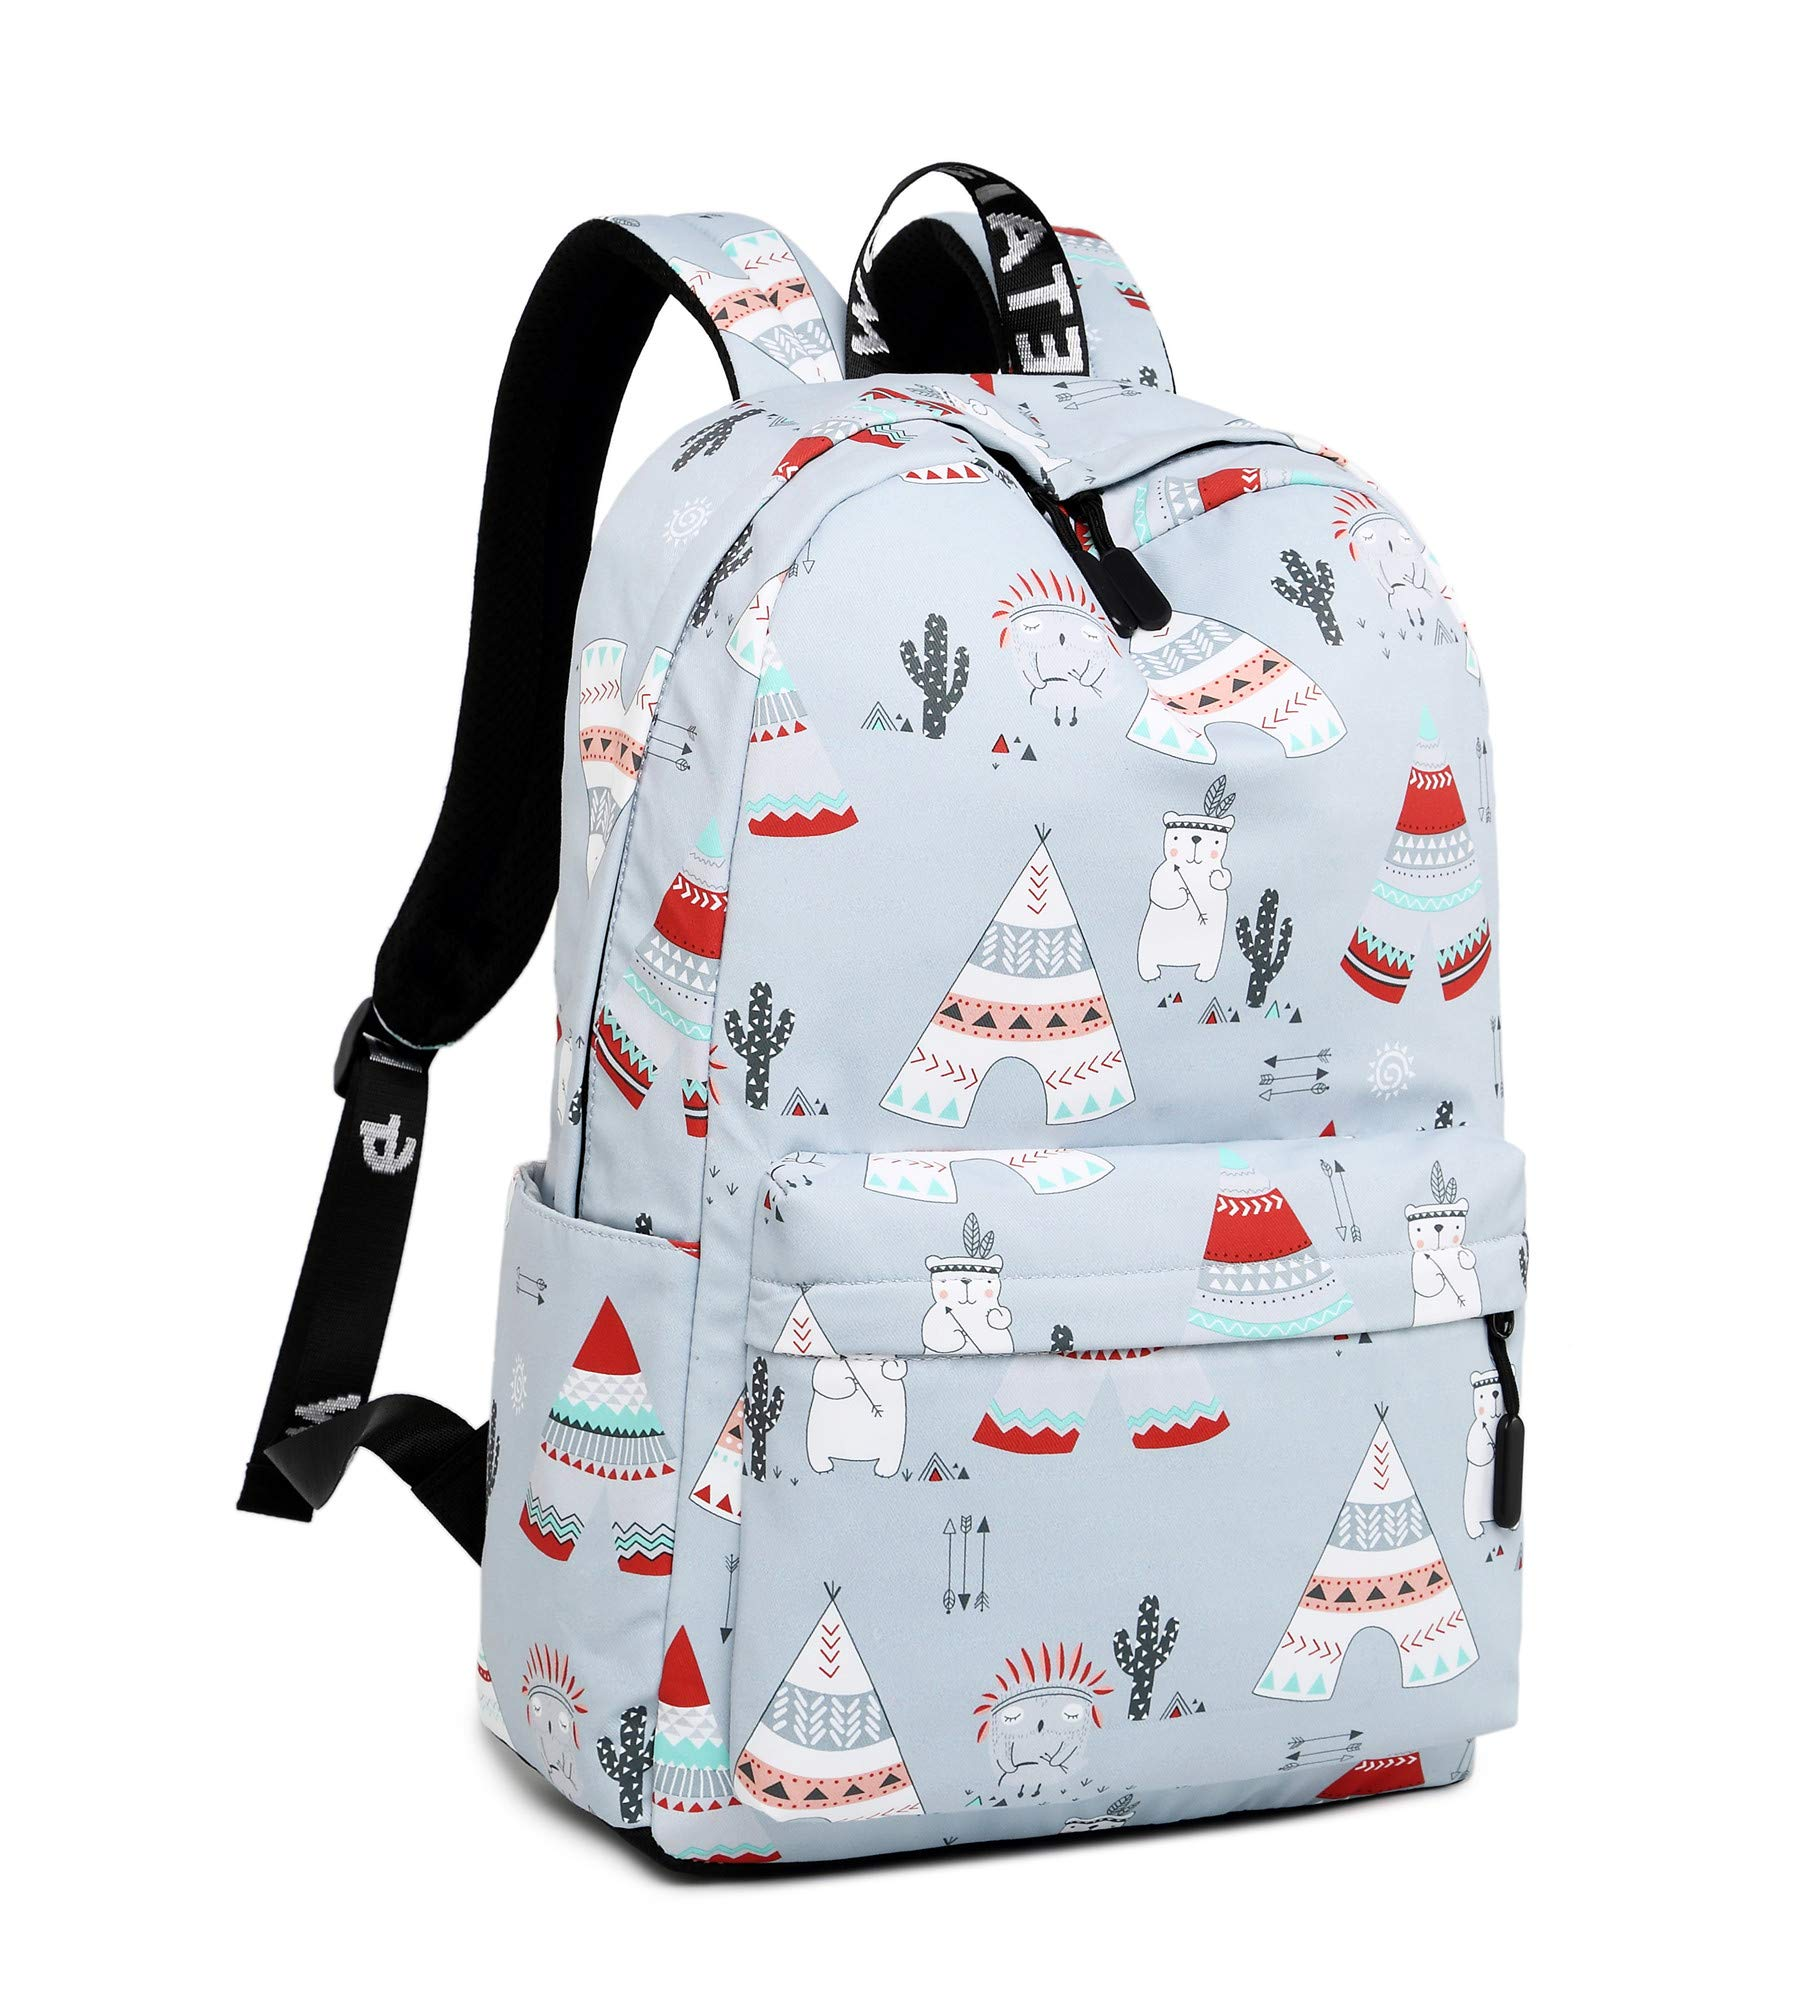 e560754894bc Galleon - Leaper Cute Laptop Backpack Shoulder Backpack School Bag Travel  Bag Gray